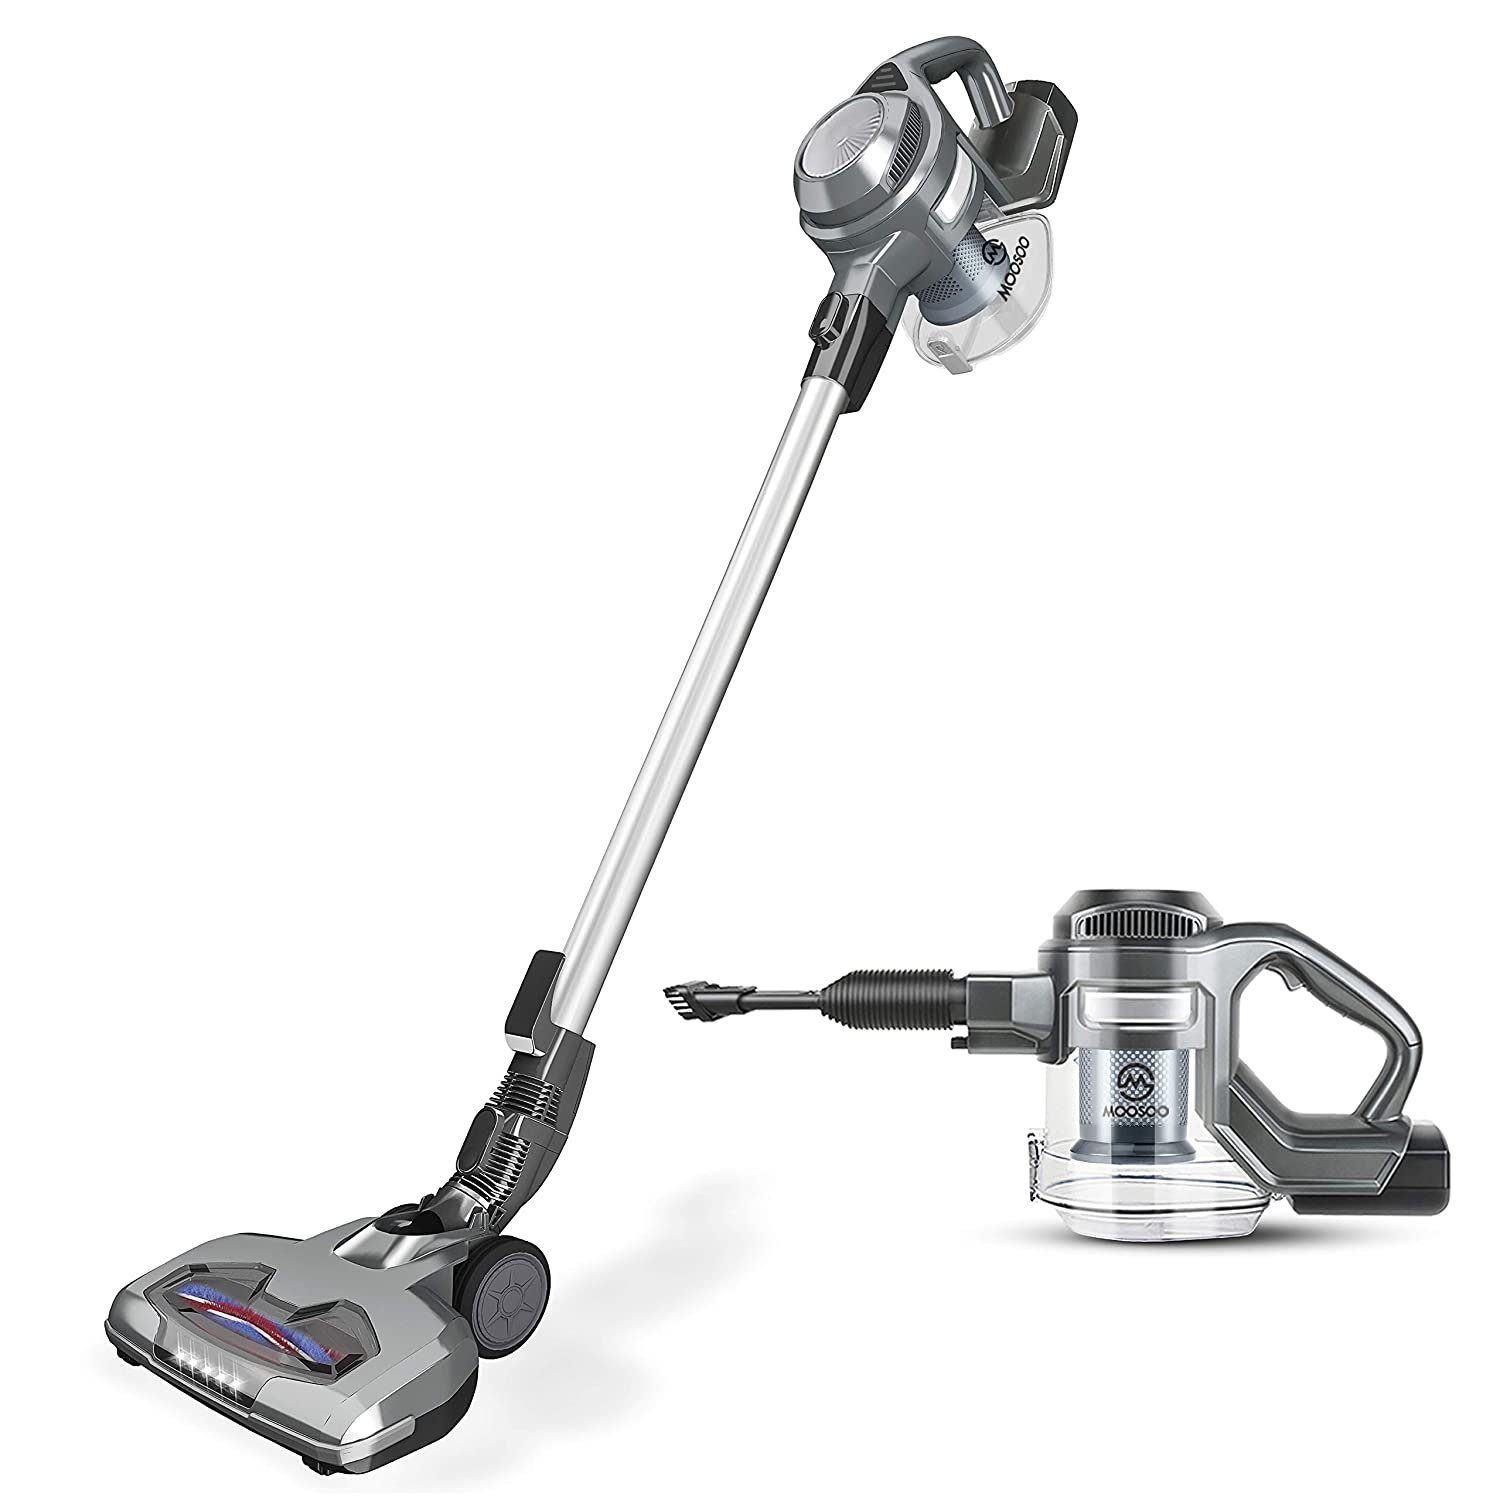 MooSoo Vacuum Cleaner 2 in 1 Cordless Stick